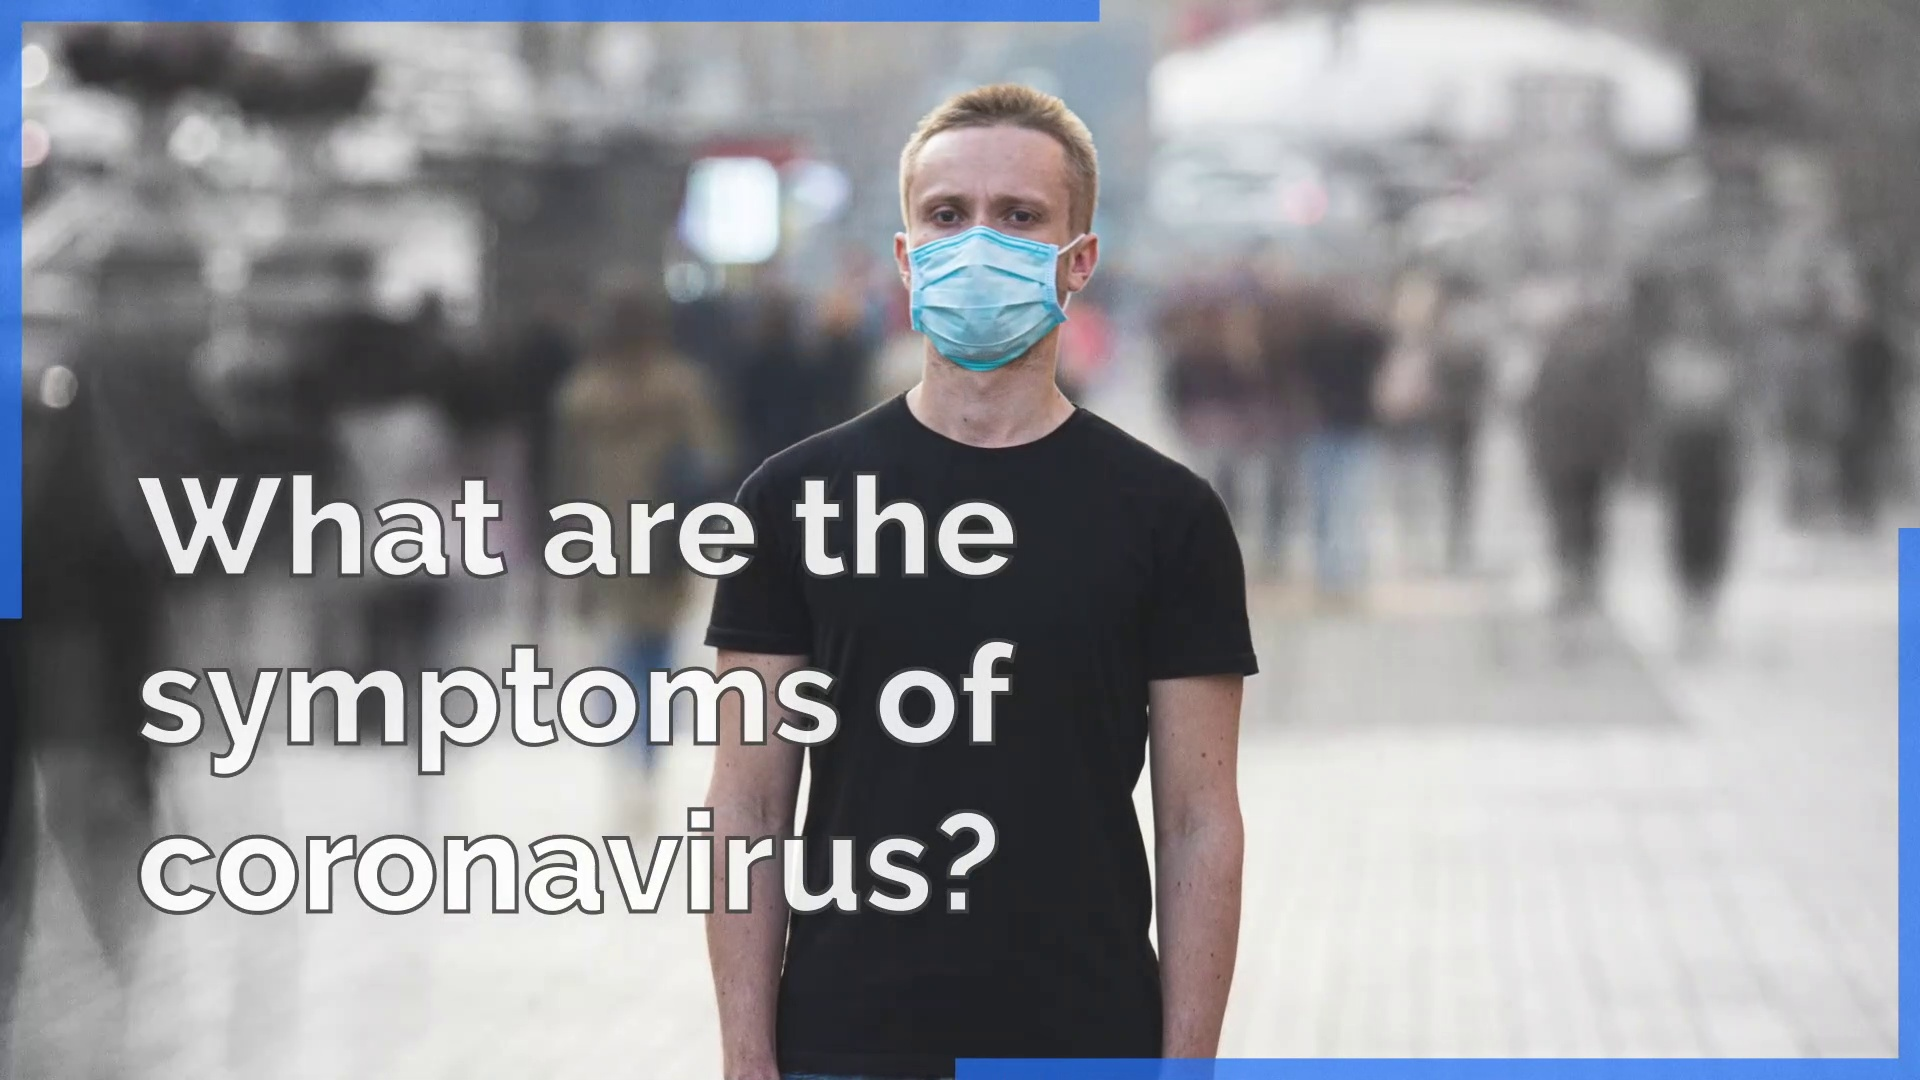 What are the symptoms of Coronavirus